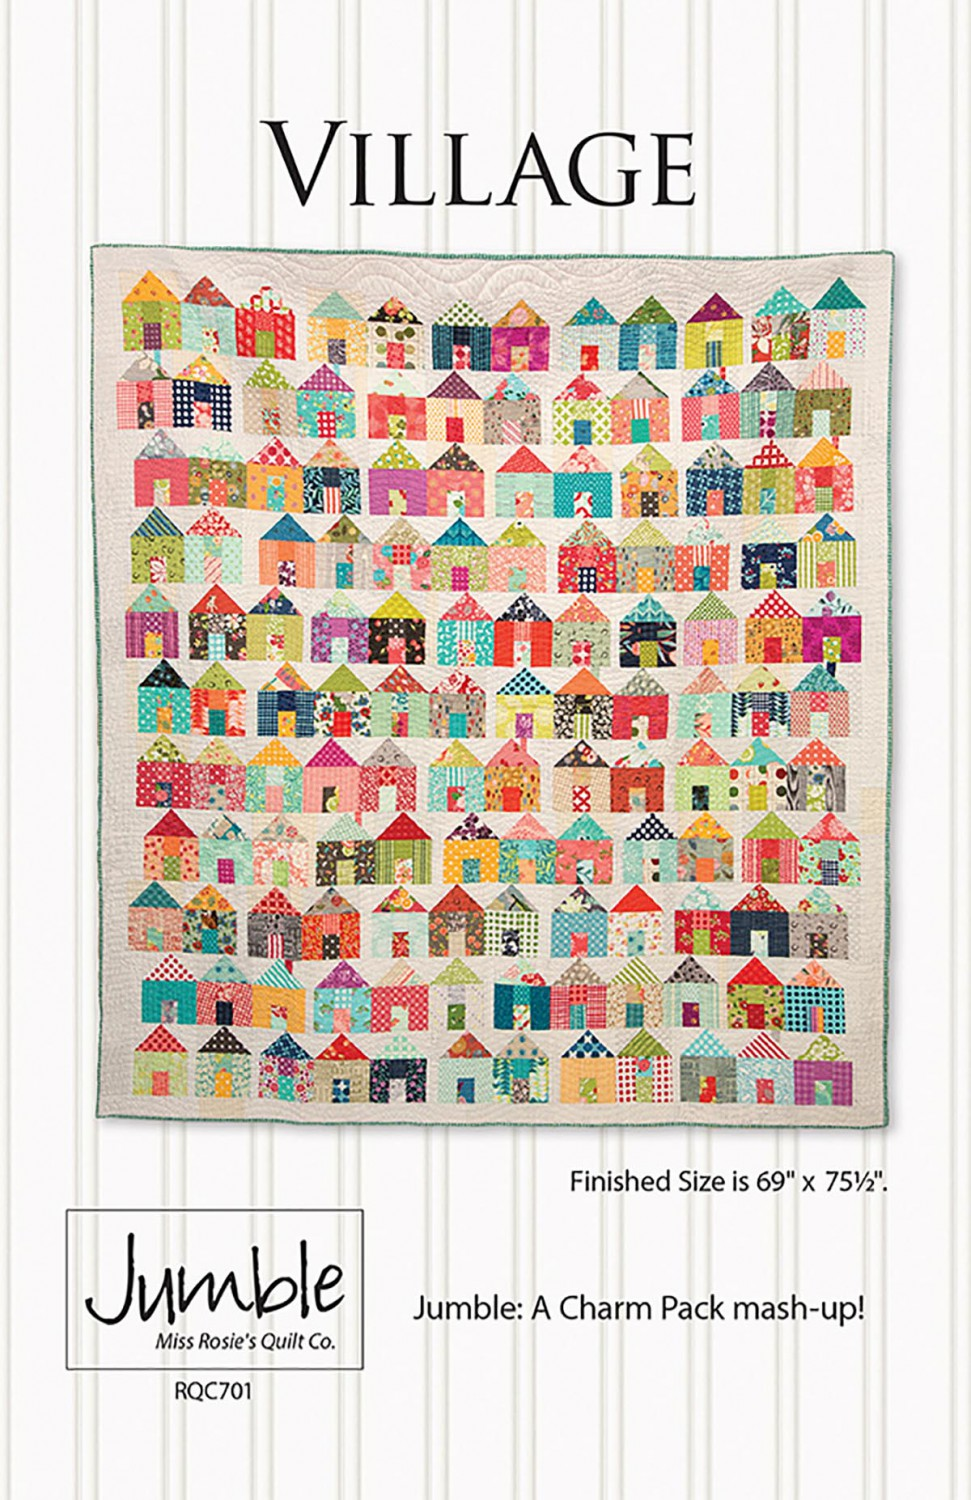 Village by Miss Rosie's Quilt Co - PAPER Pattern